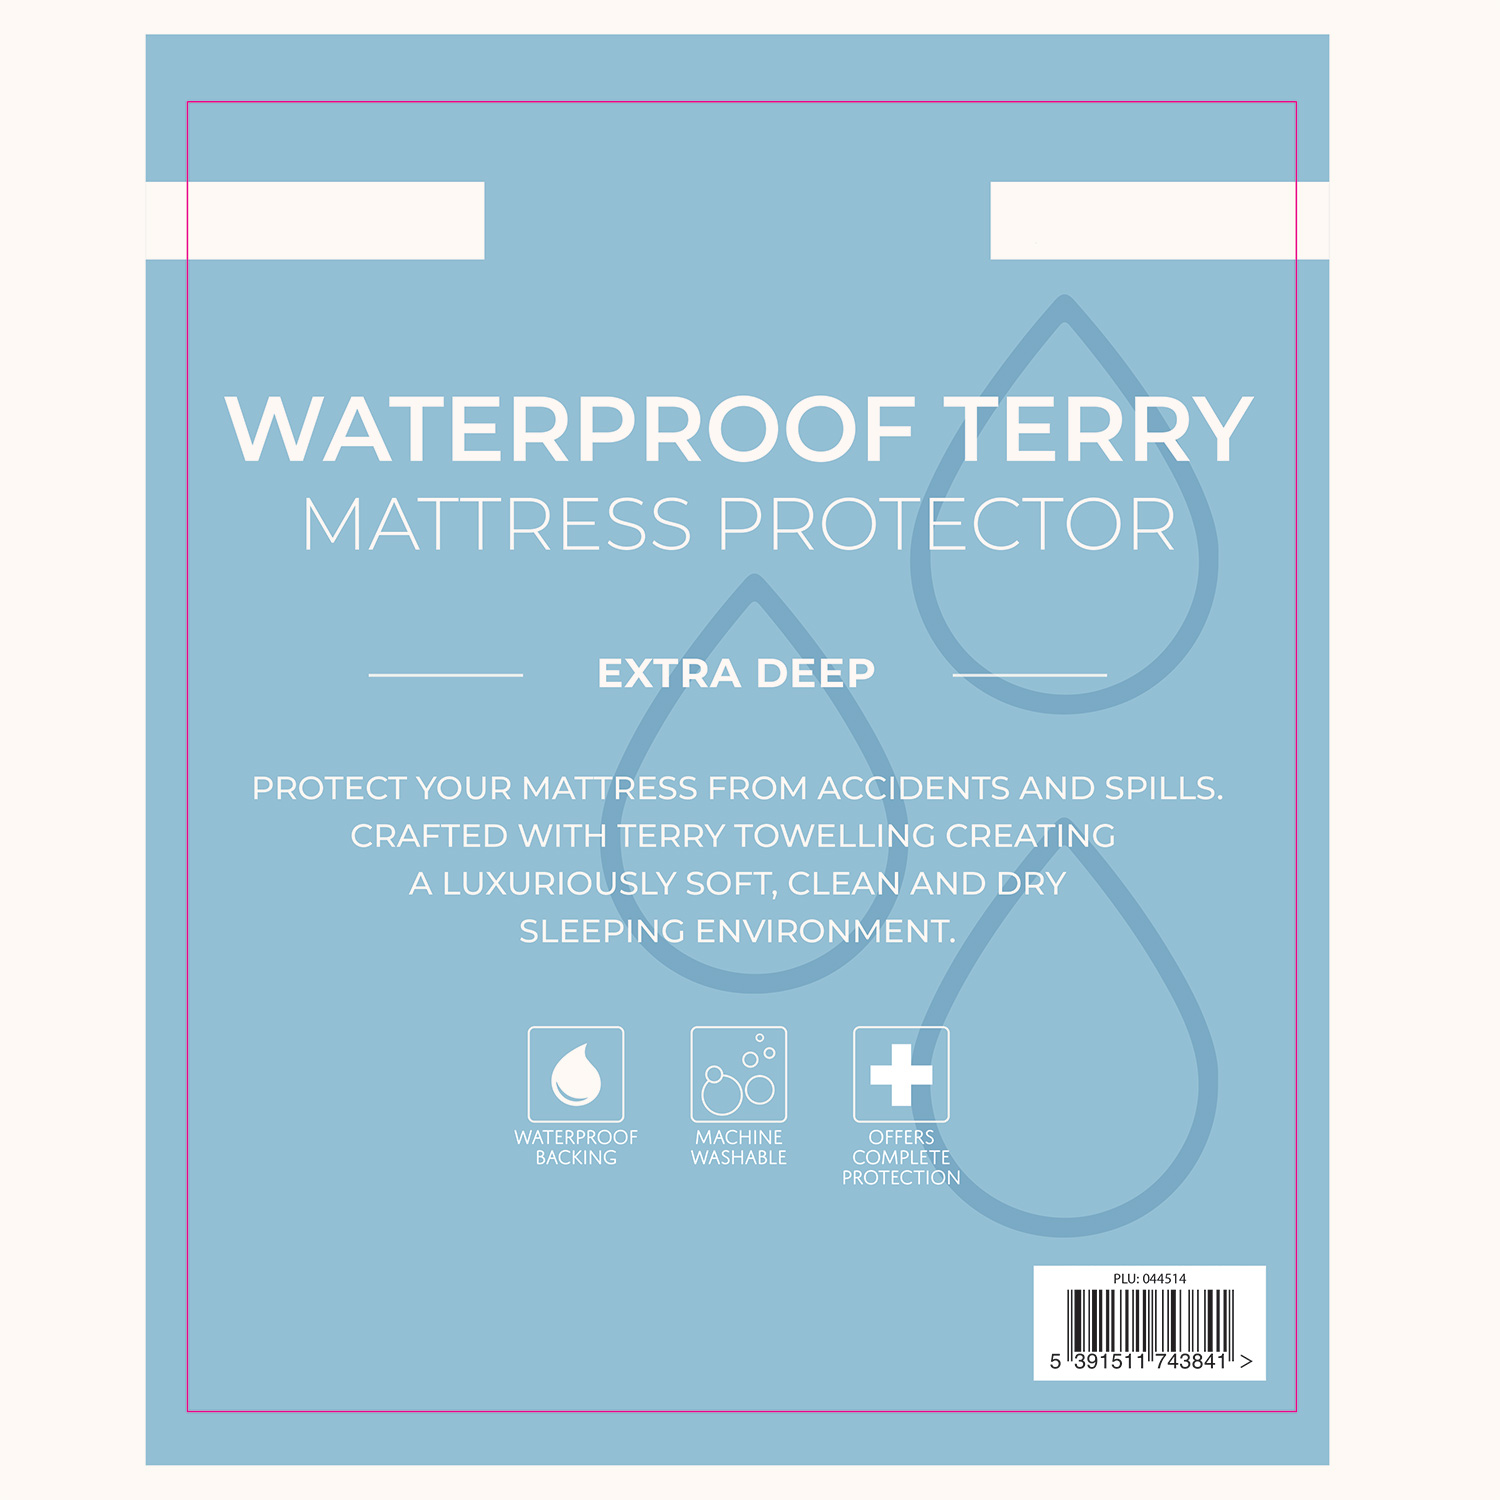 Super King Size Waterproof Mattress Protector Waterproof Terry Mattress Protector Home Store More